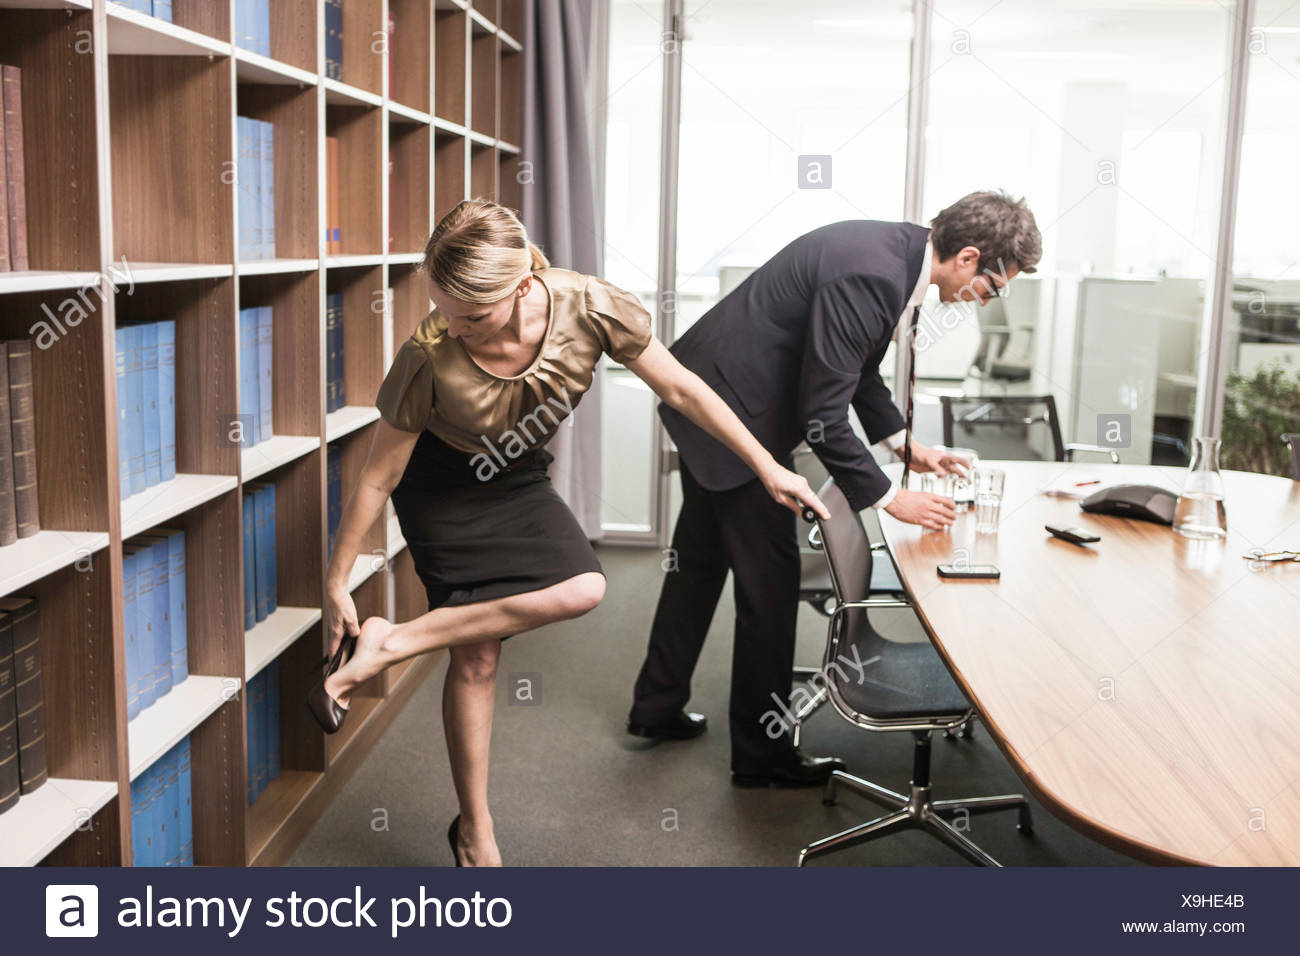 Woman putting on shoe and man leaning over table - Stock Image